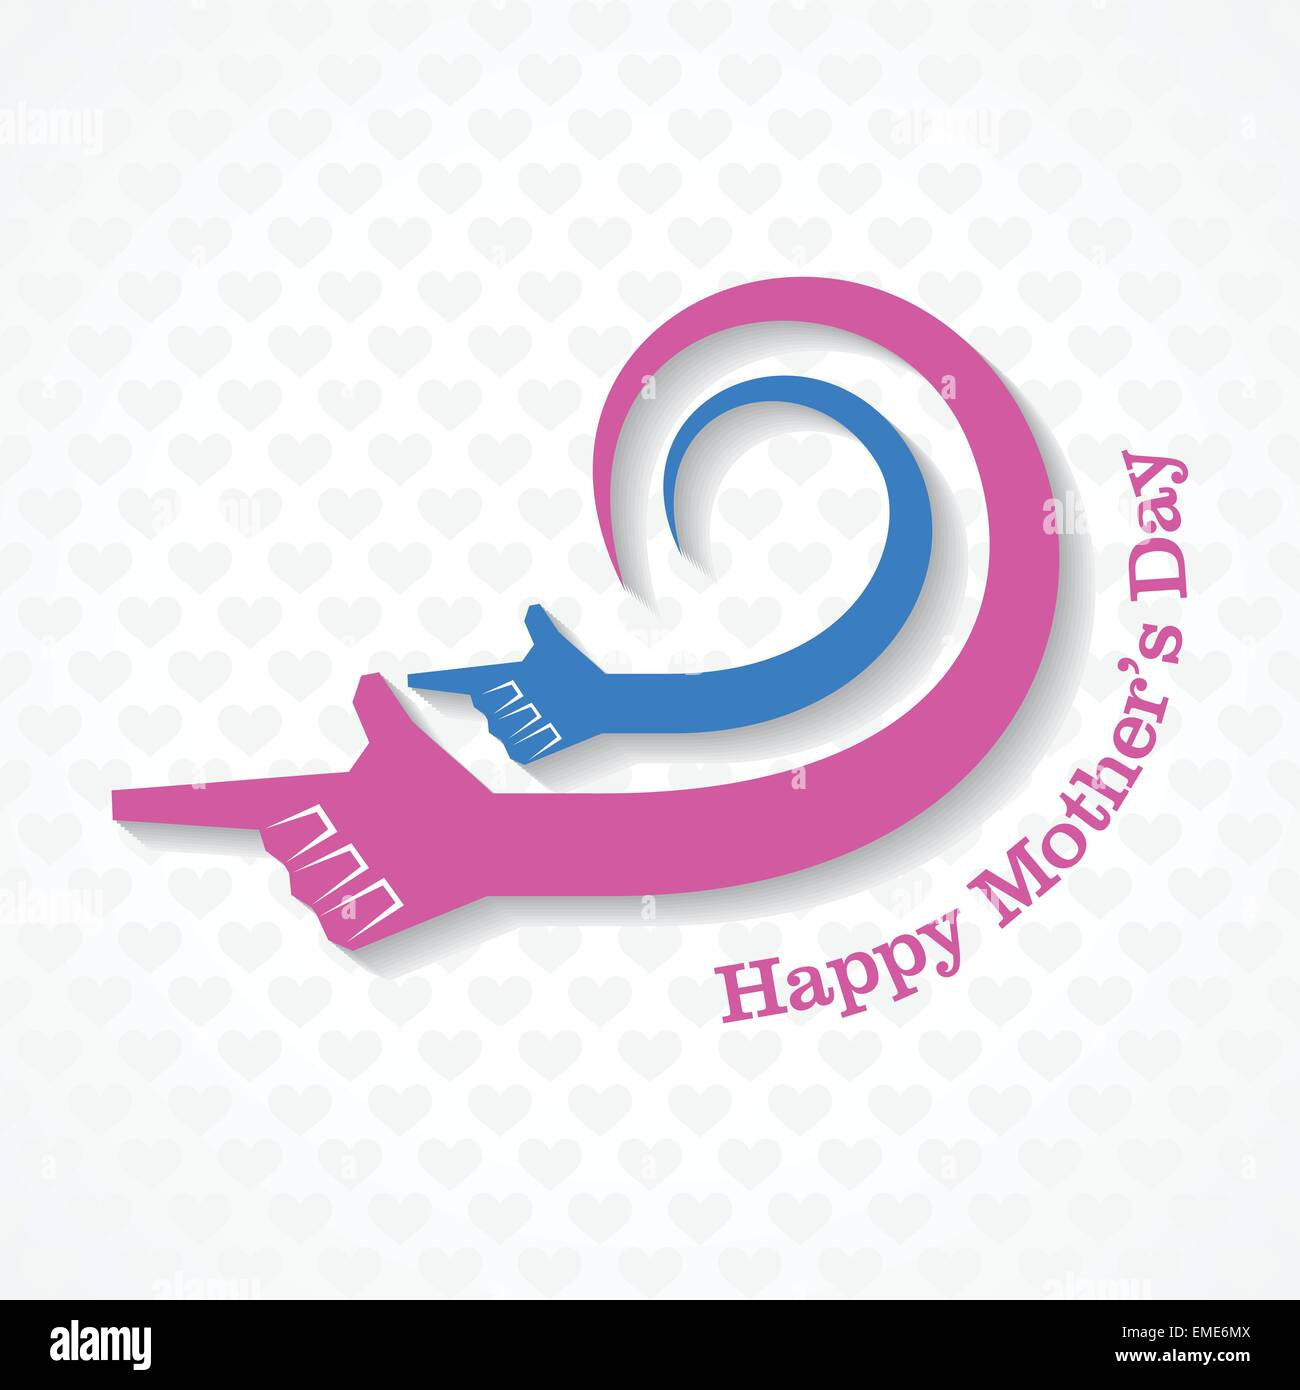 Mothers day greeting with mother and child hand stock vector - Stock Vector